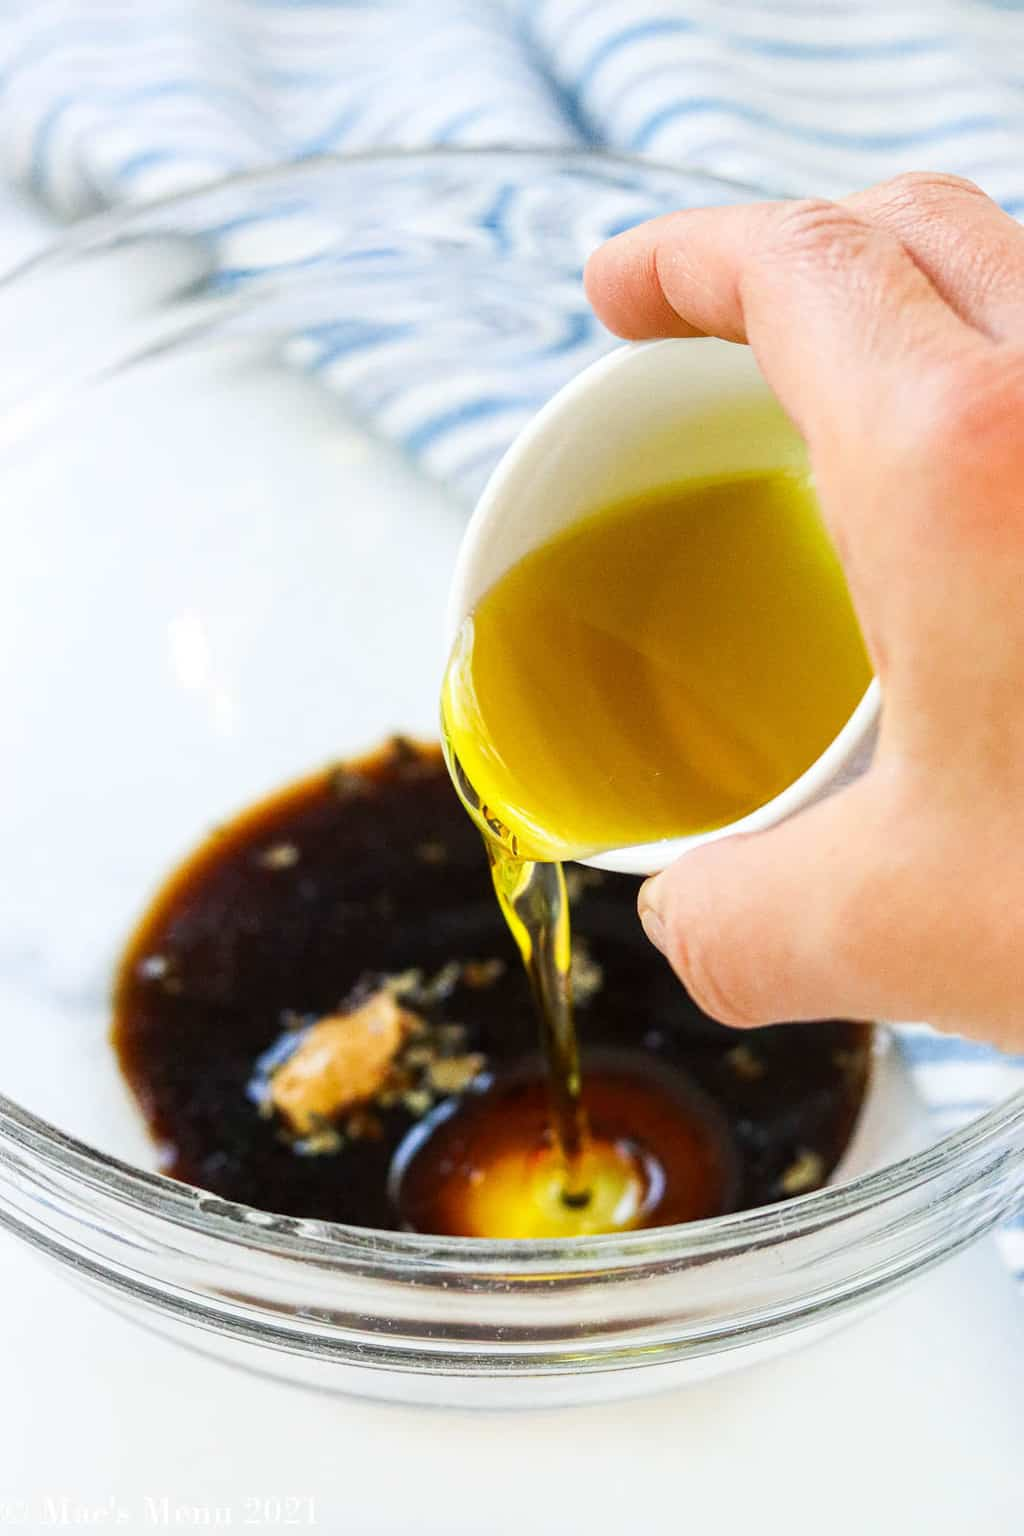 Pouring olive oil into a mixing bowl of the balsamic dressing